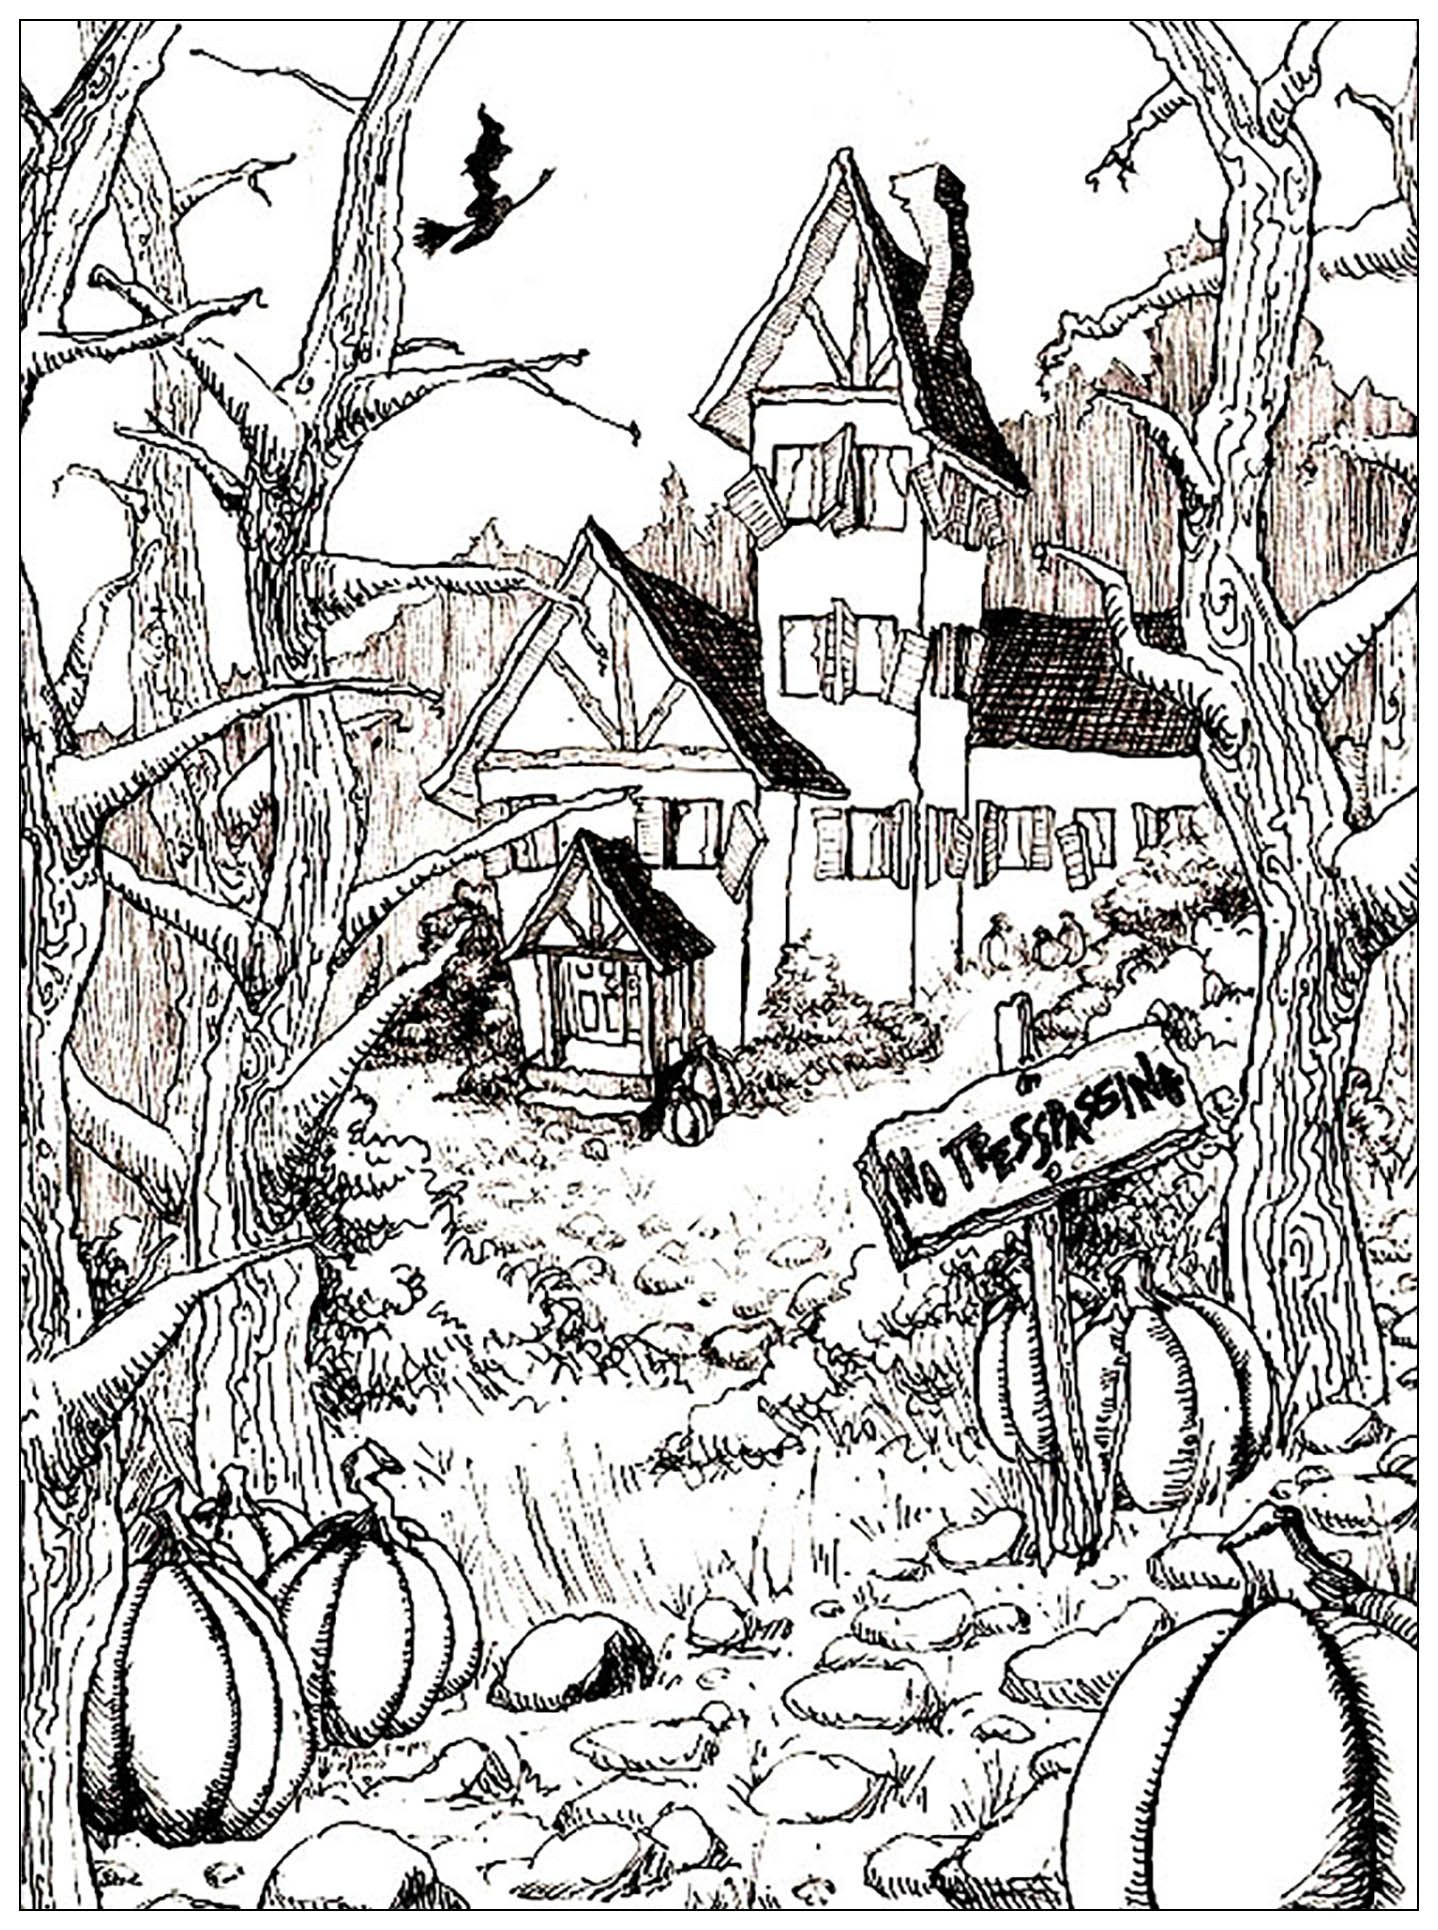 Free Coloring Page Halloween Difficult On The Theme Of Here Is A Very Rich Draing Haunted House At Bottom Garden Full